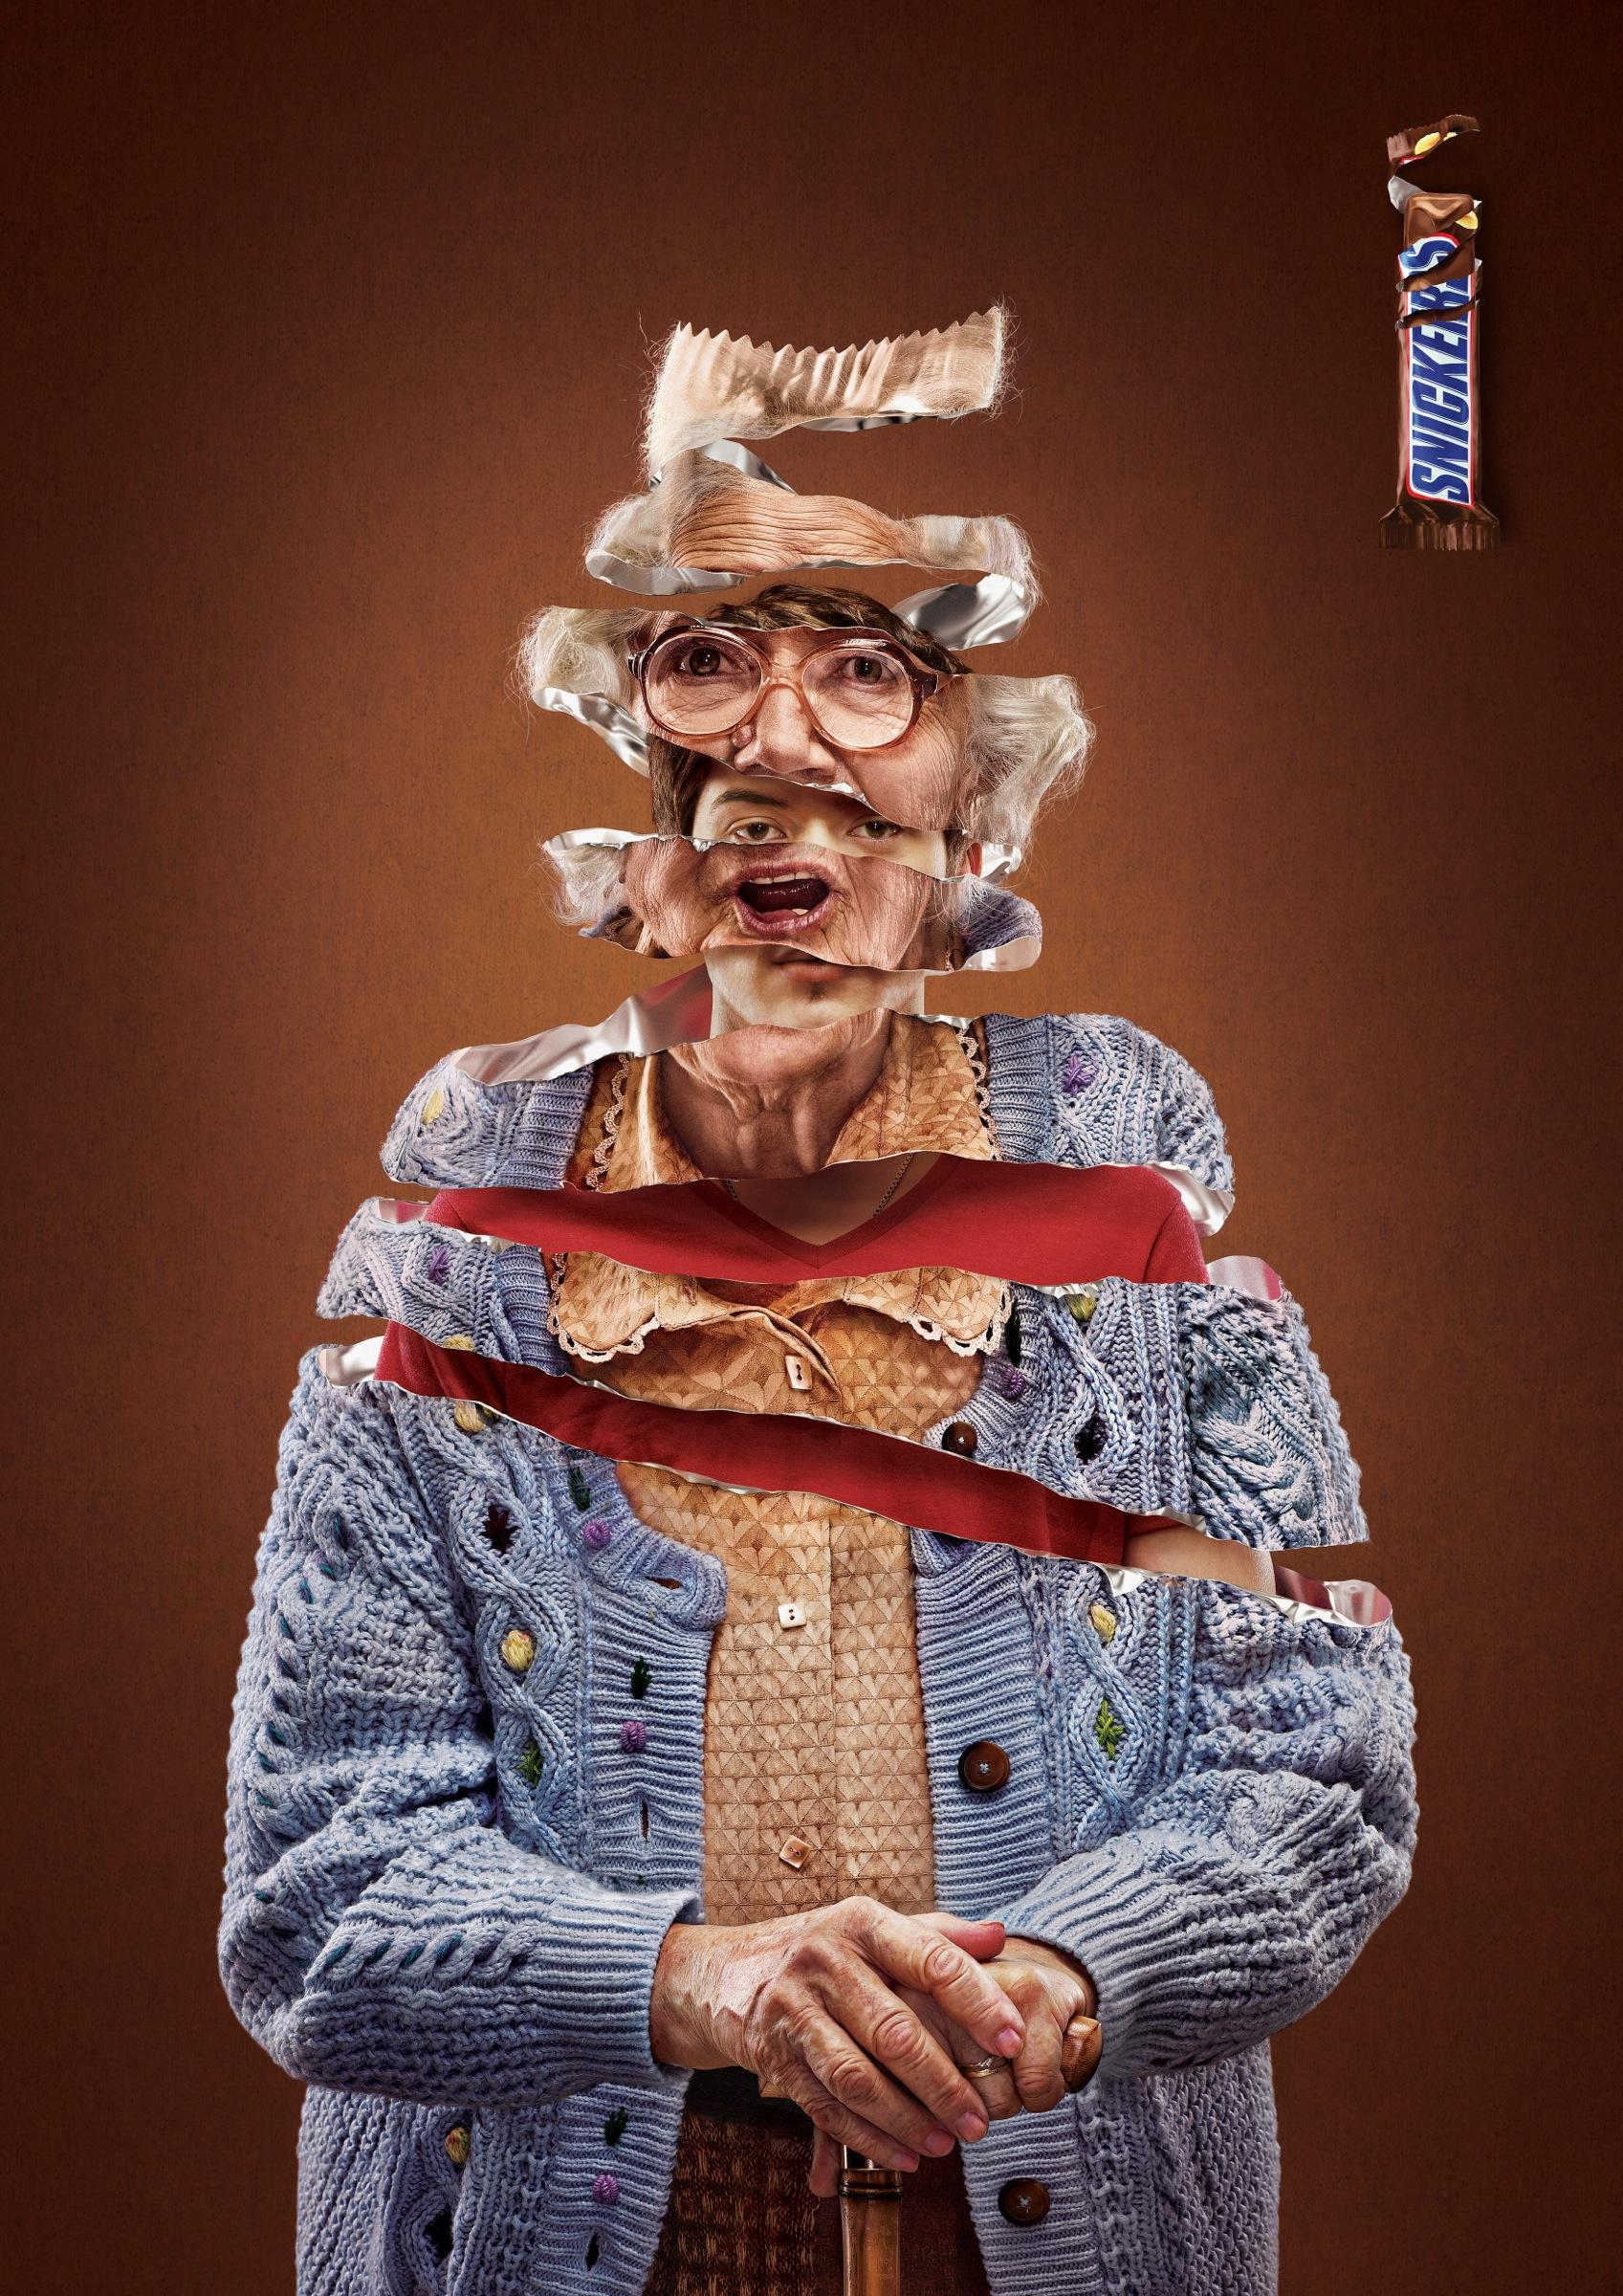 snickers print advertbbdo: granny | ads of the world™